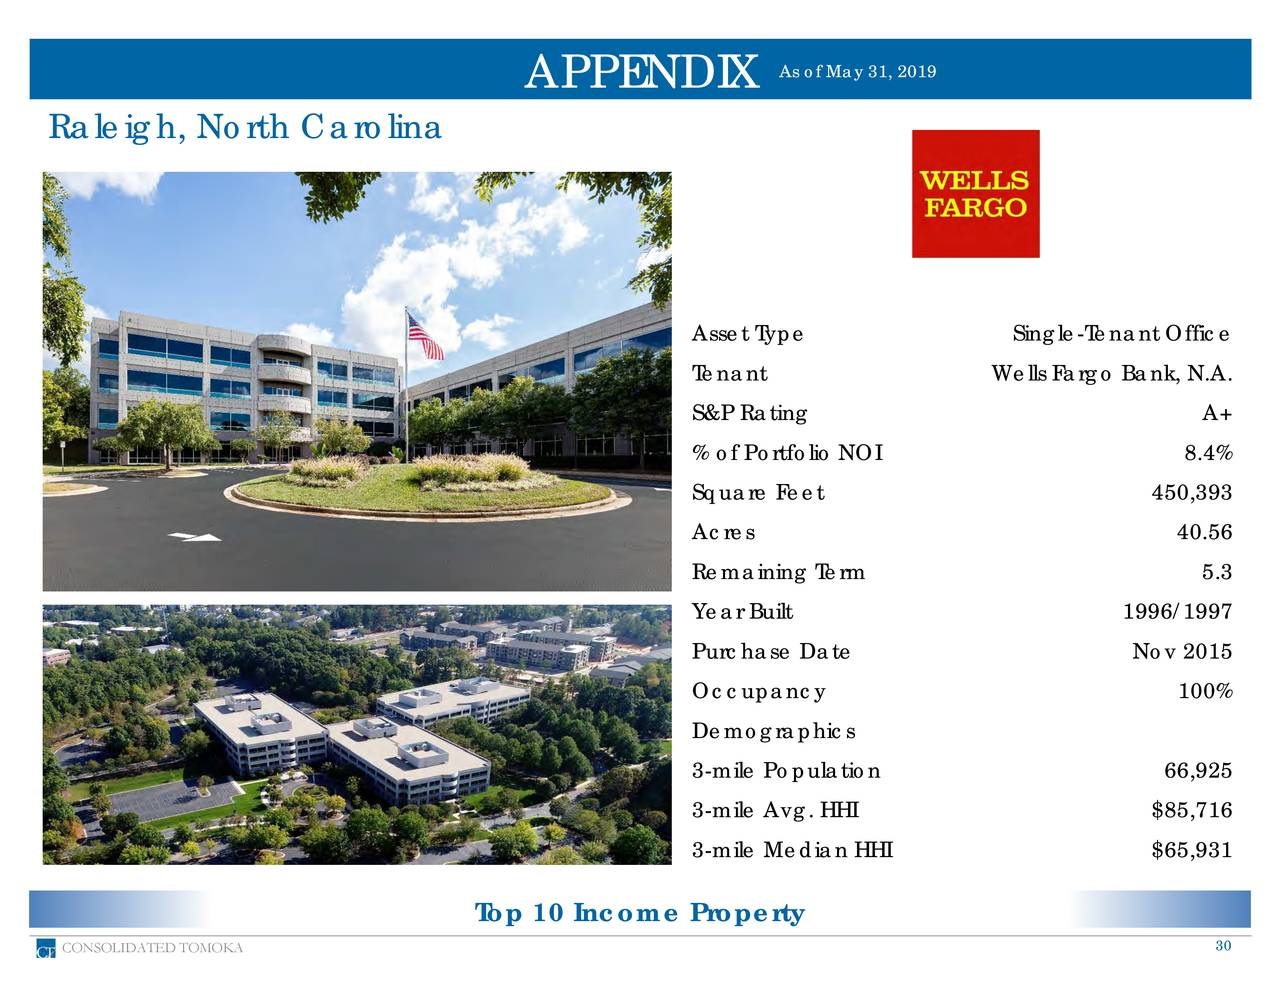 APPENDIX Raleigh, North Carolina Asset Type Single-Tenant Office Tenant Wells Fargo Bank, N.A. S&P Rating A+ % of Portfolio NOI 8.4% Square Feet 450,393 Acres 40.56 Remaining Term 5.3 Year Built 1996/1997 Purchase Date Nov 2015 Occupancy 100% Demographics 3-mile Population 66,925 3-mile Avg. HHI $85,716 3-mile Median HHI $65,931 Top 10 Income Property CONSOLIDATED TOMOKA 30